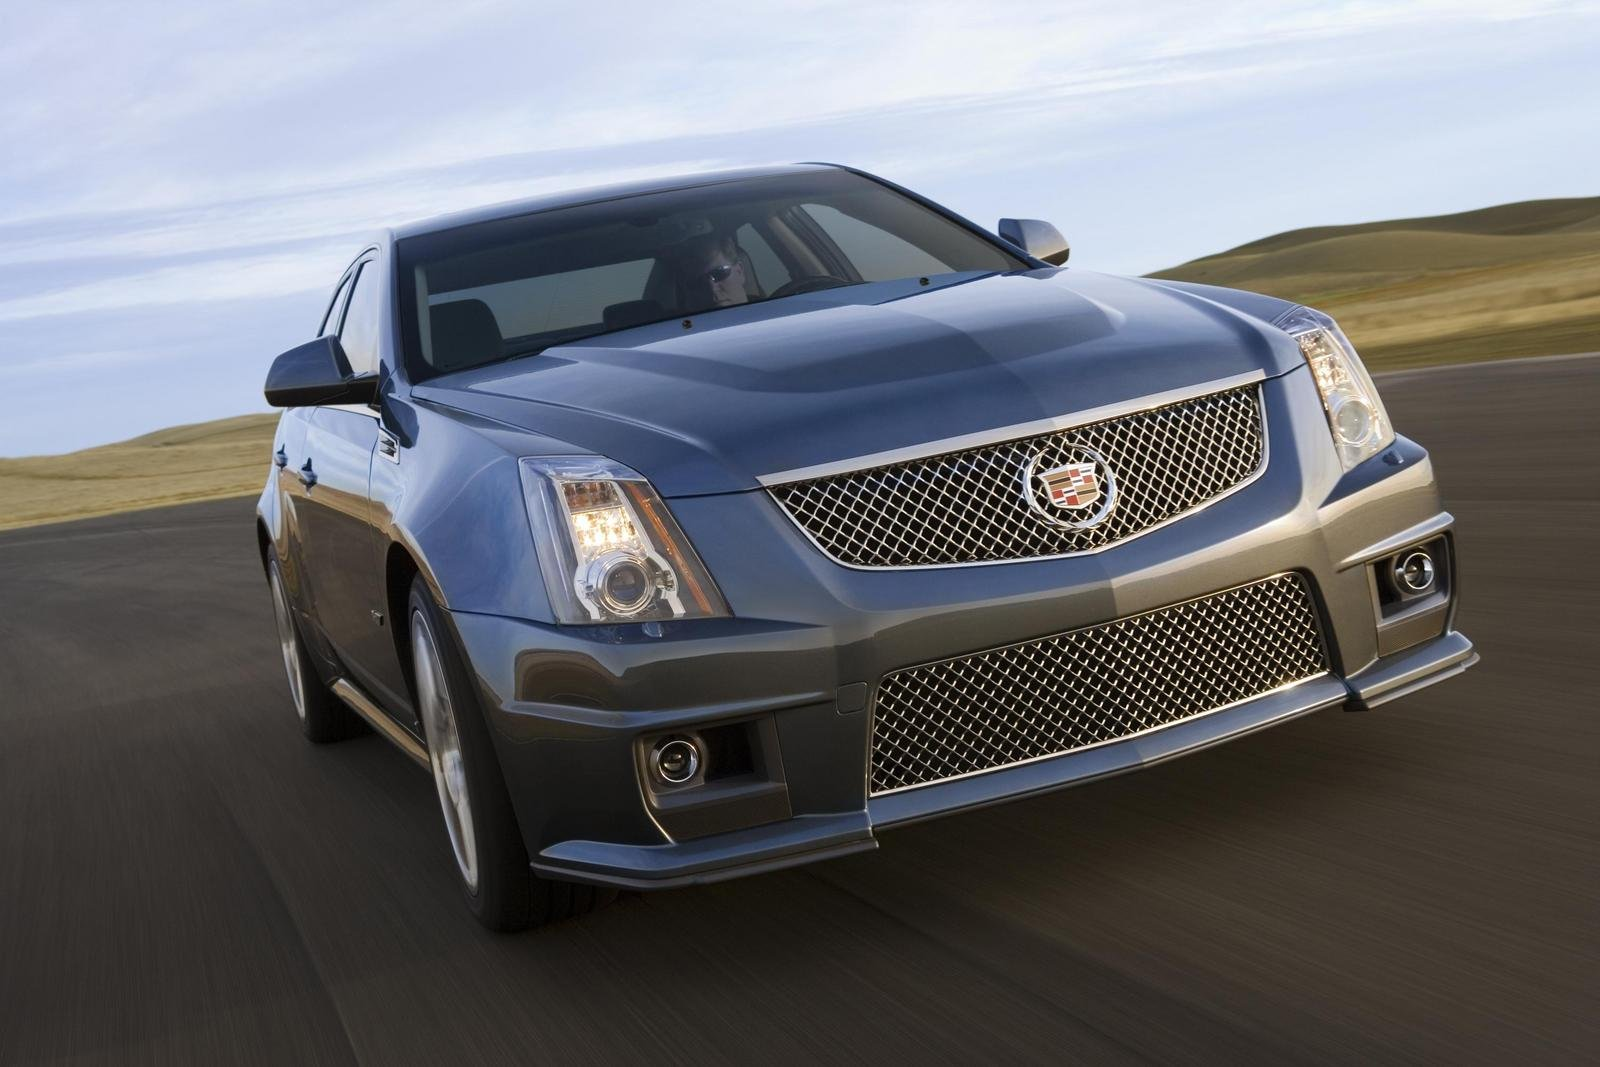 2009 cadillac cts v officially rated at 556 hp news top. Black Bedroom Furniture Sets. Home Design Ideas